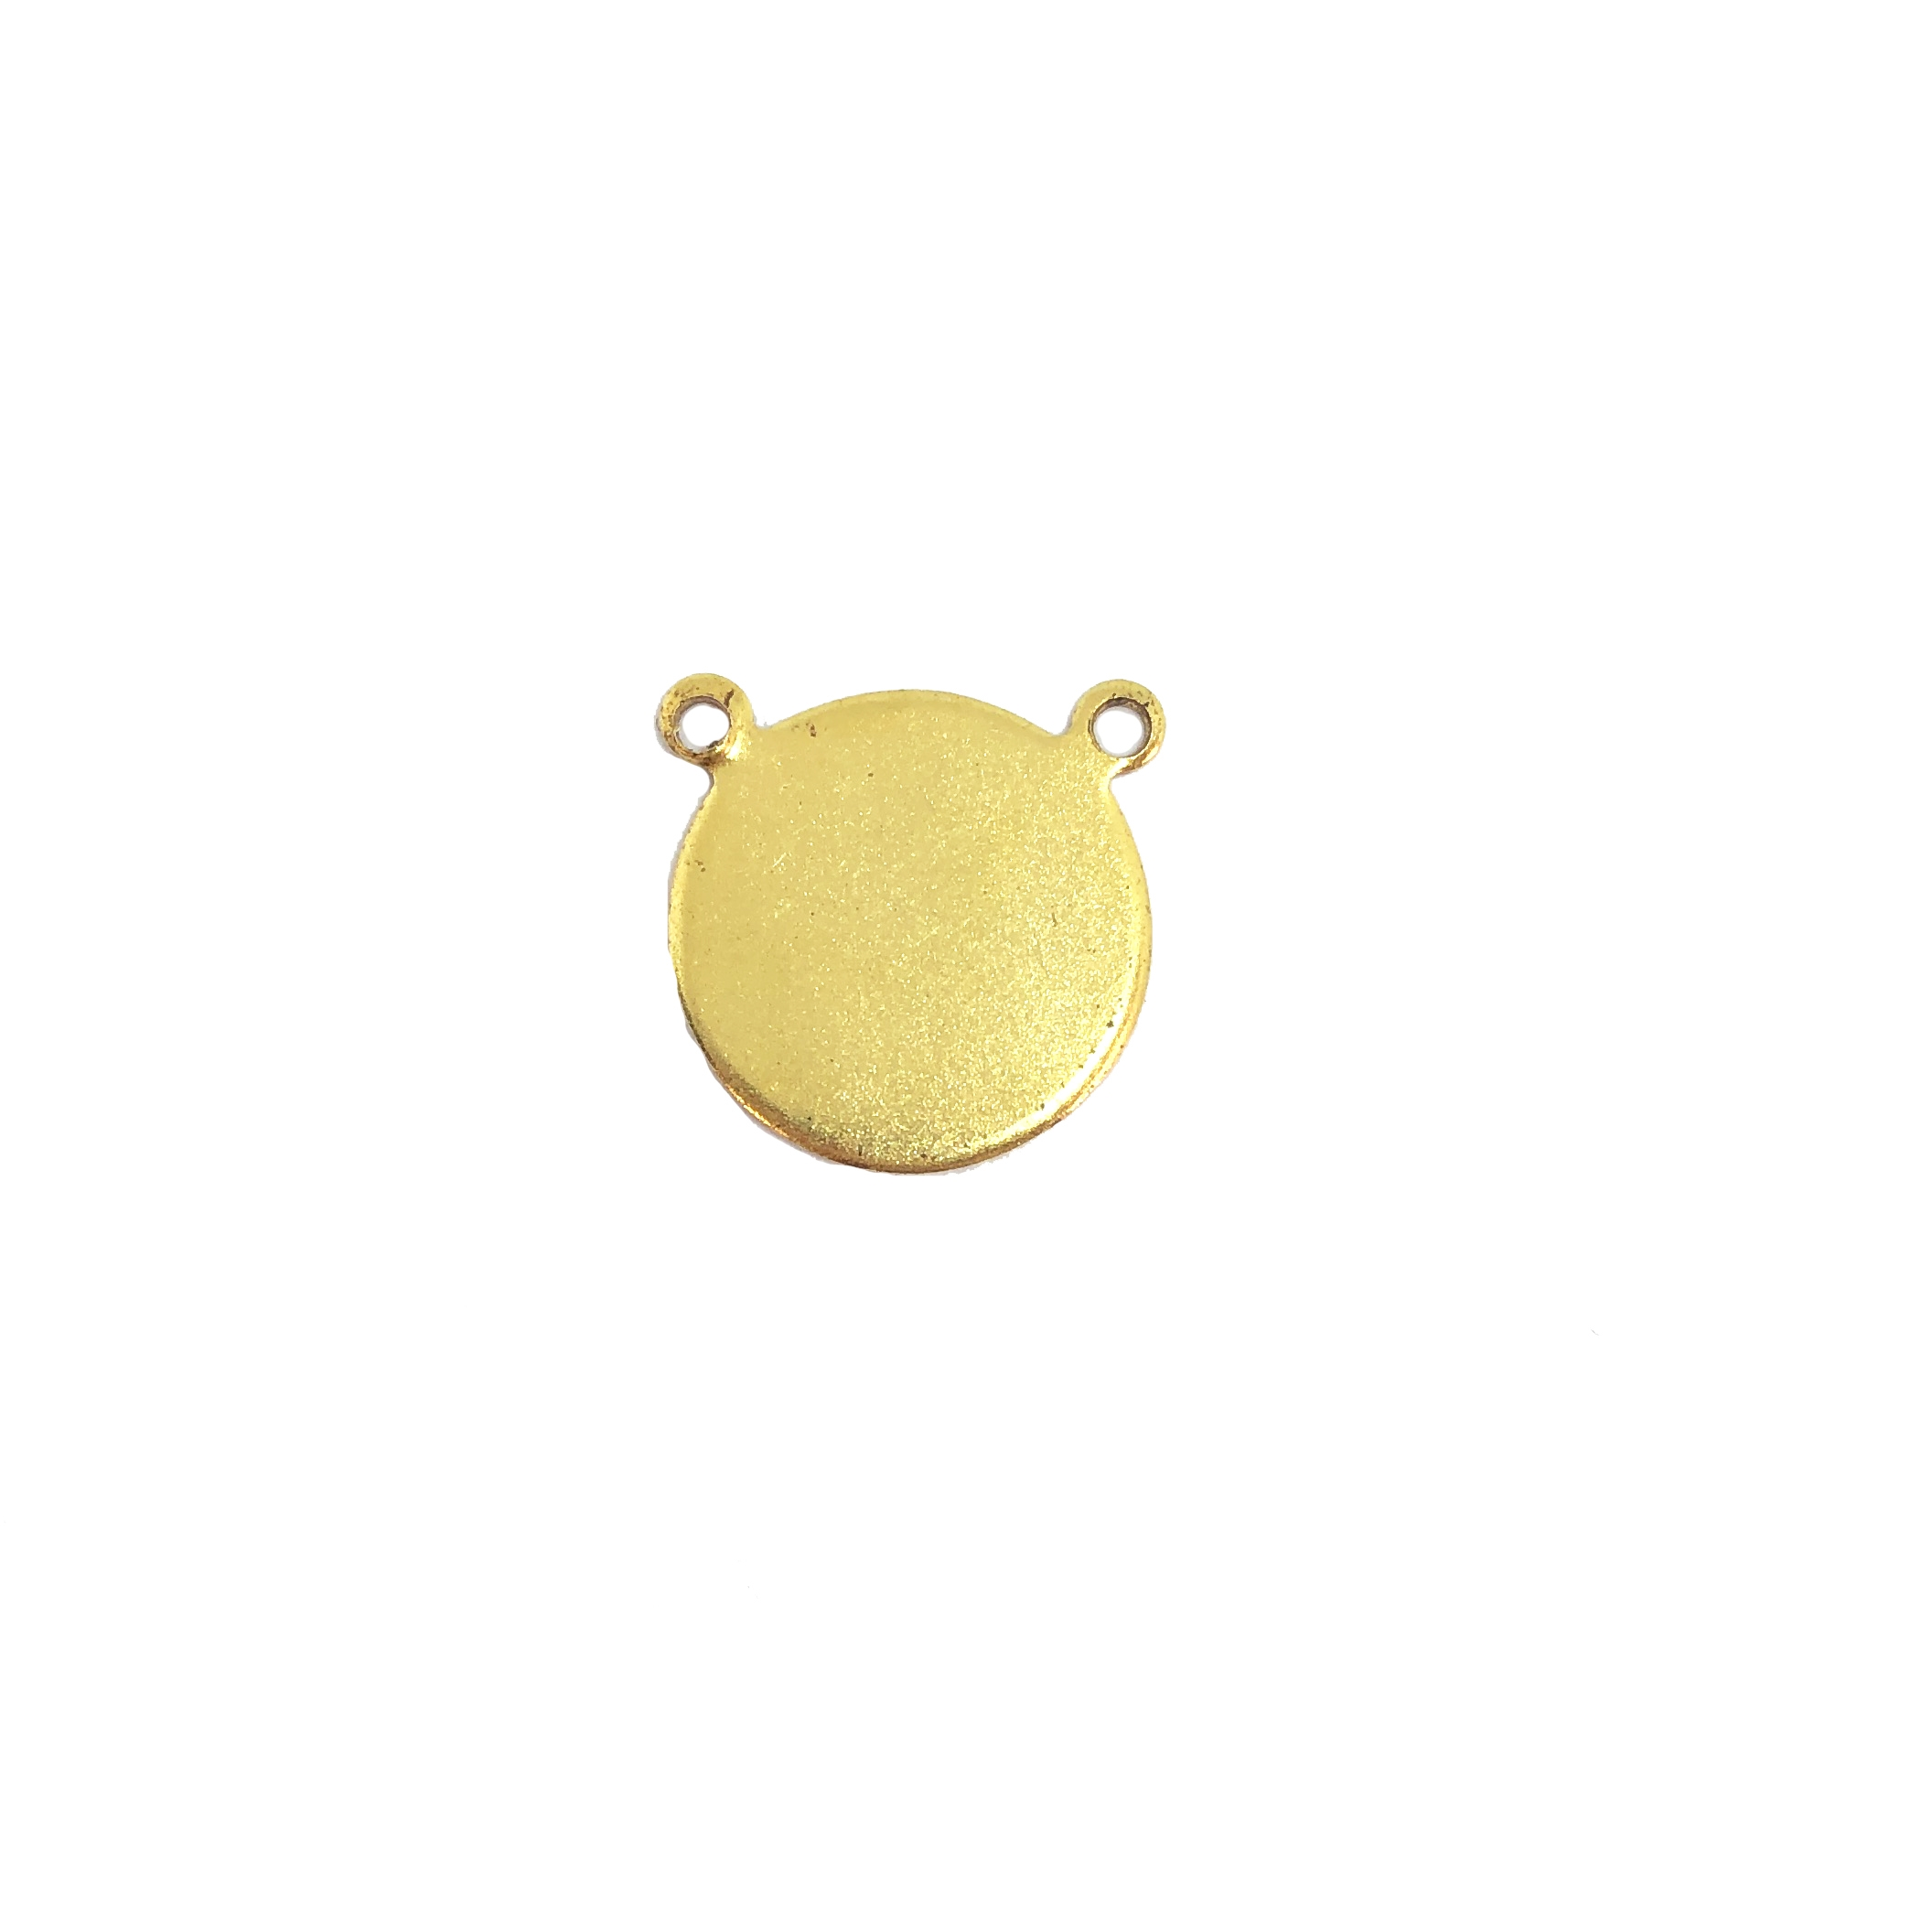 Brass blank, pendant base, double hole base, jewelry supplies, 12-13mm, 09769,  vintage jewelry supplies, brass jewelry parts, brass jewelry findings, antique gold, classic gold, college base